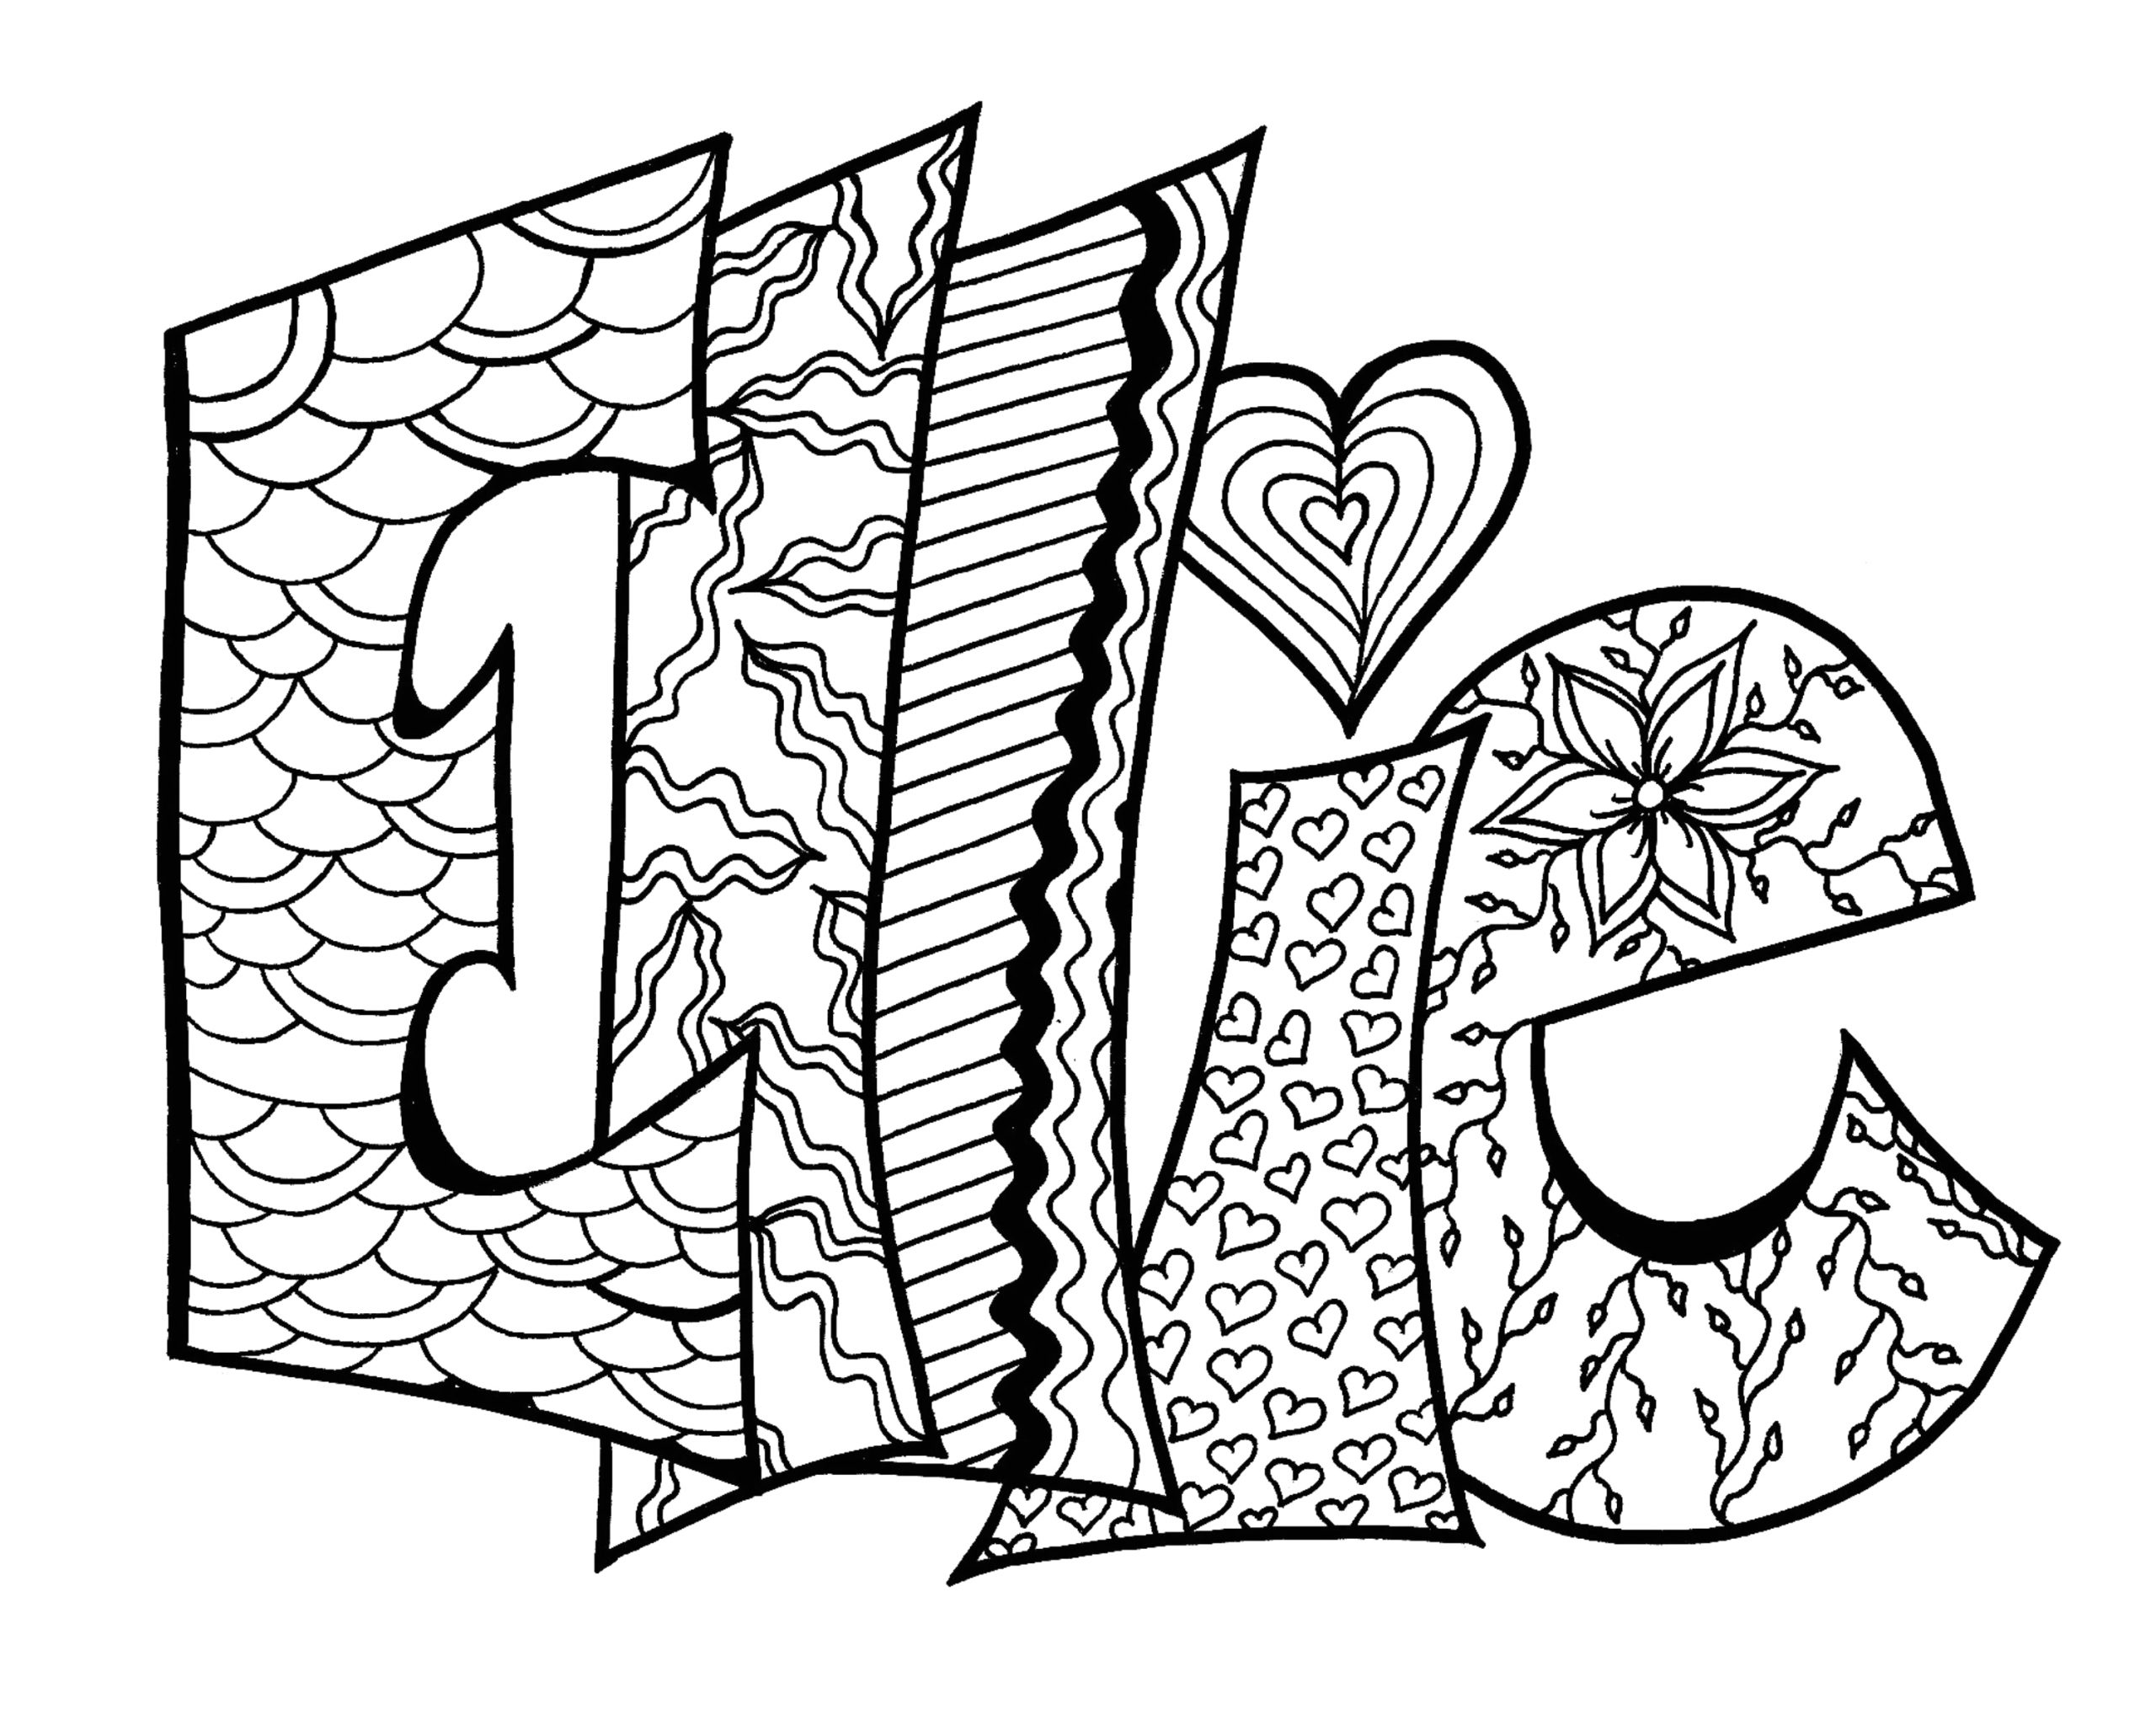 Customized Coloring Pages with Names On It Personalized Name Coloring Pages at Getcolorings